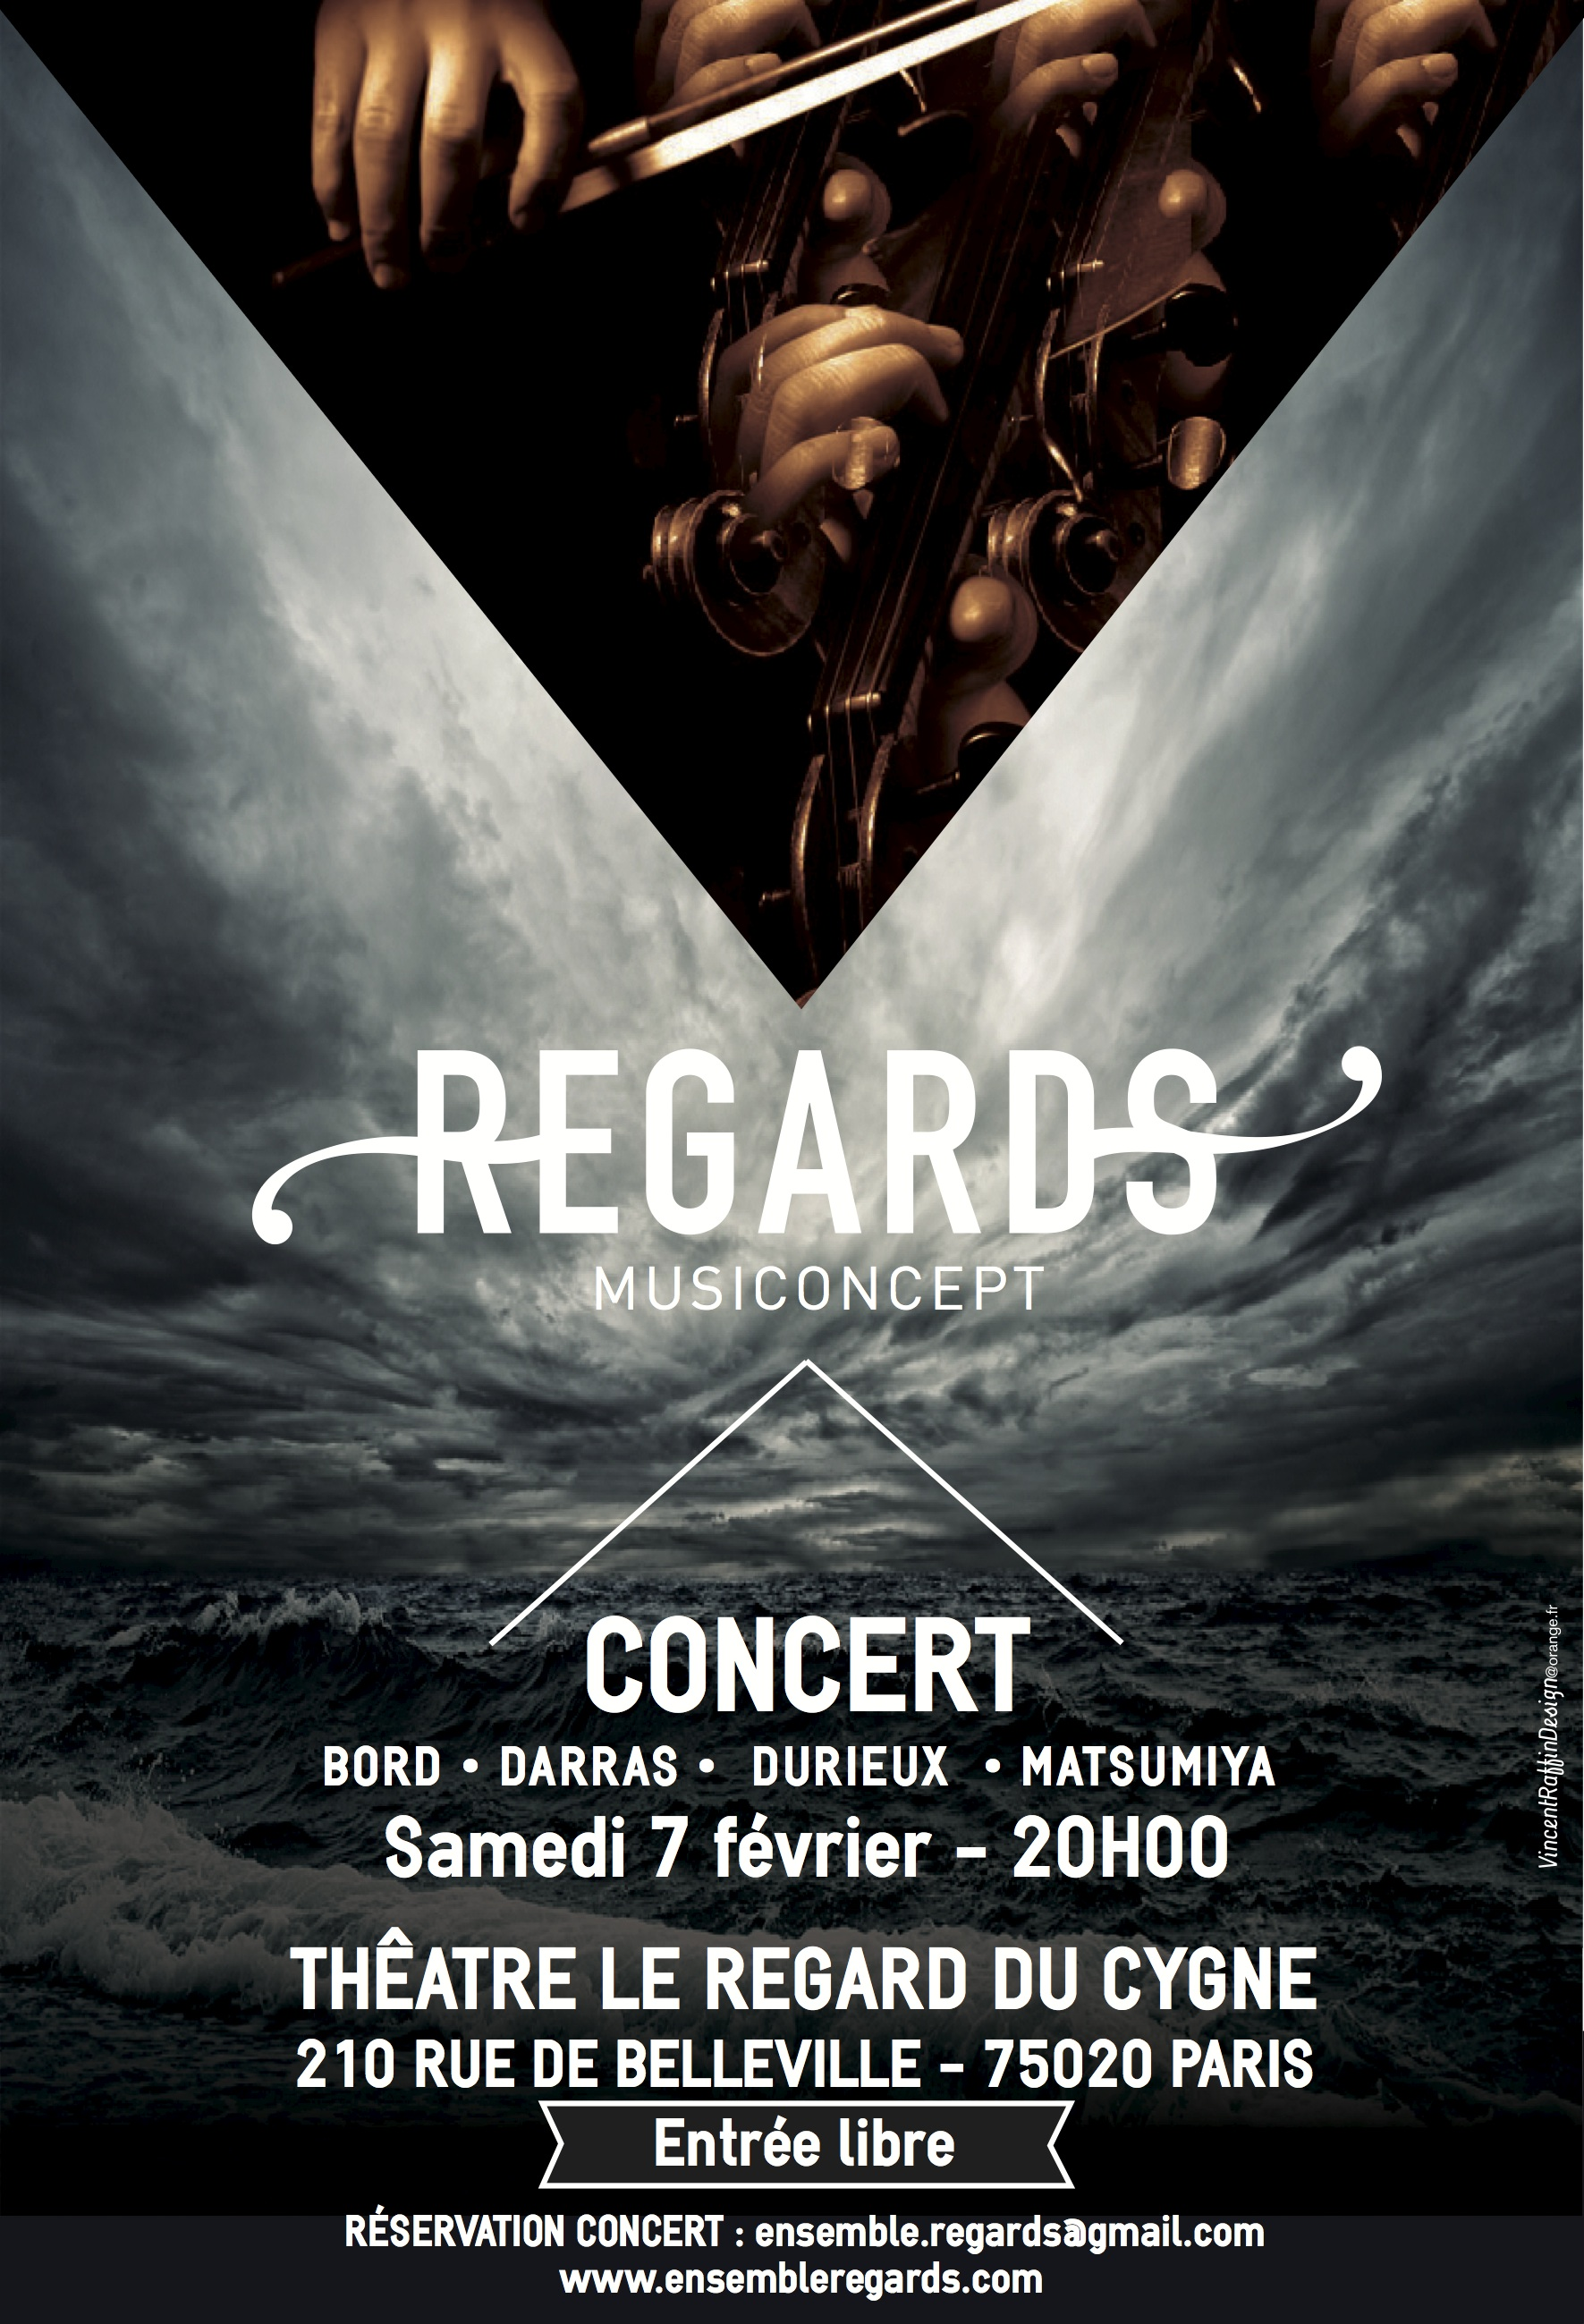 Regards CONCERT n°1